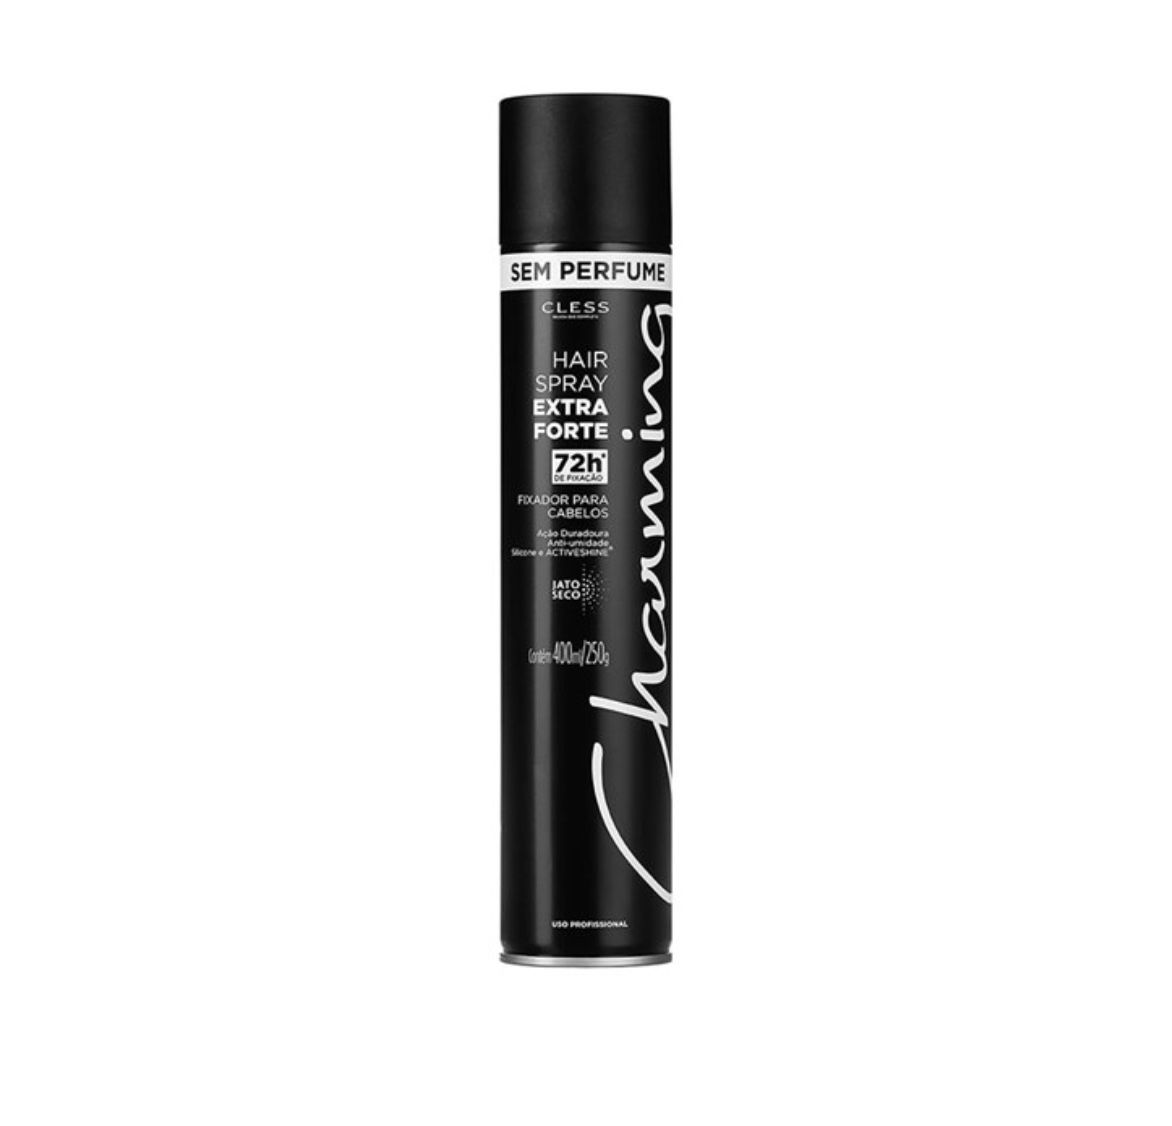 HAIR SPRAY CHARMING EXTRA FORTE SEM PERFUME 400ML